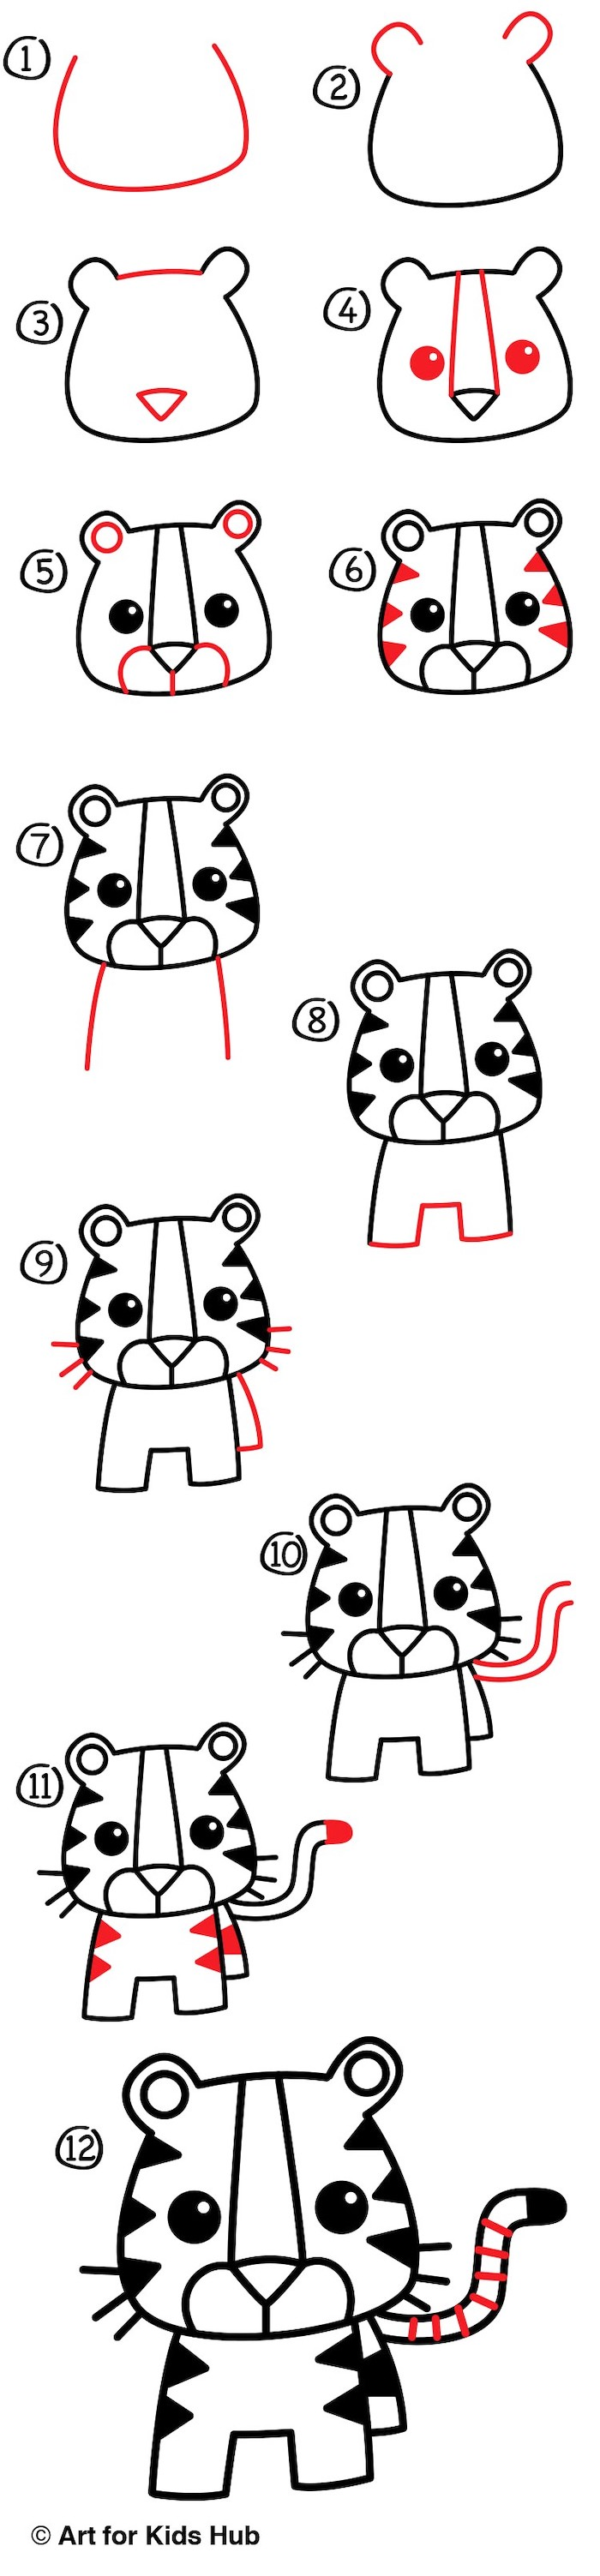 how to draw a baby tiger in twelve steps, how to draw step by step, step by step diy tutorial, white background